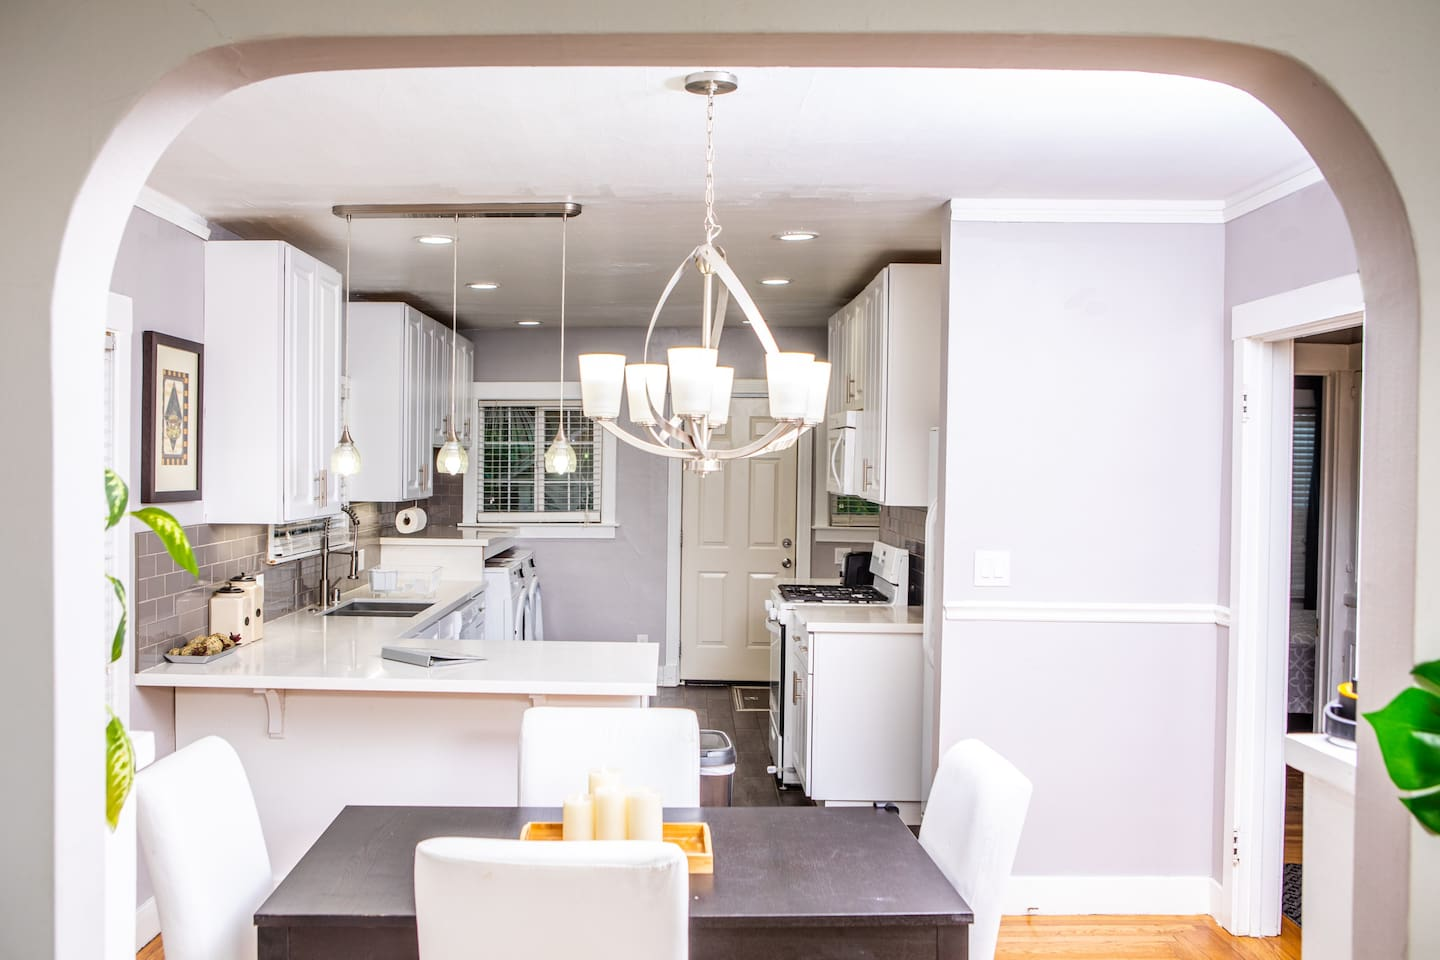 Come and enjoy our fully remodeled Oak Park bungalow. We spent the last two years adding upgrades while maintaining its 100 year old charm.